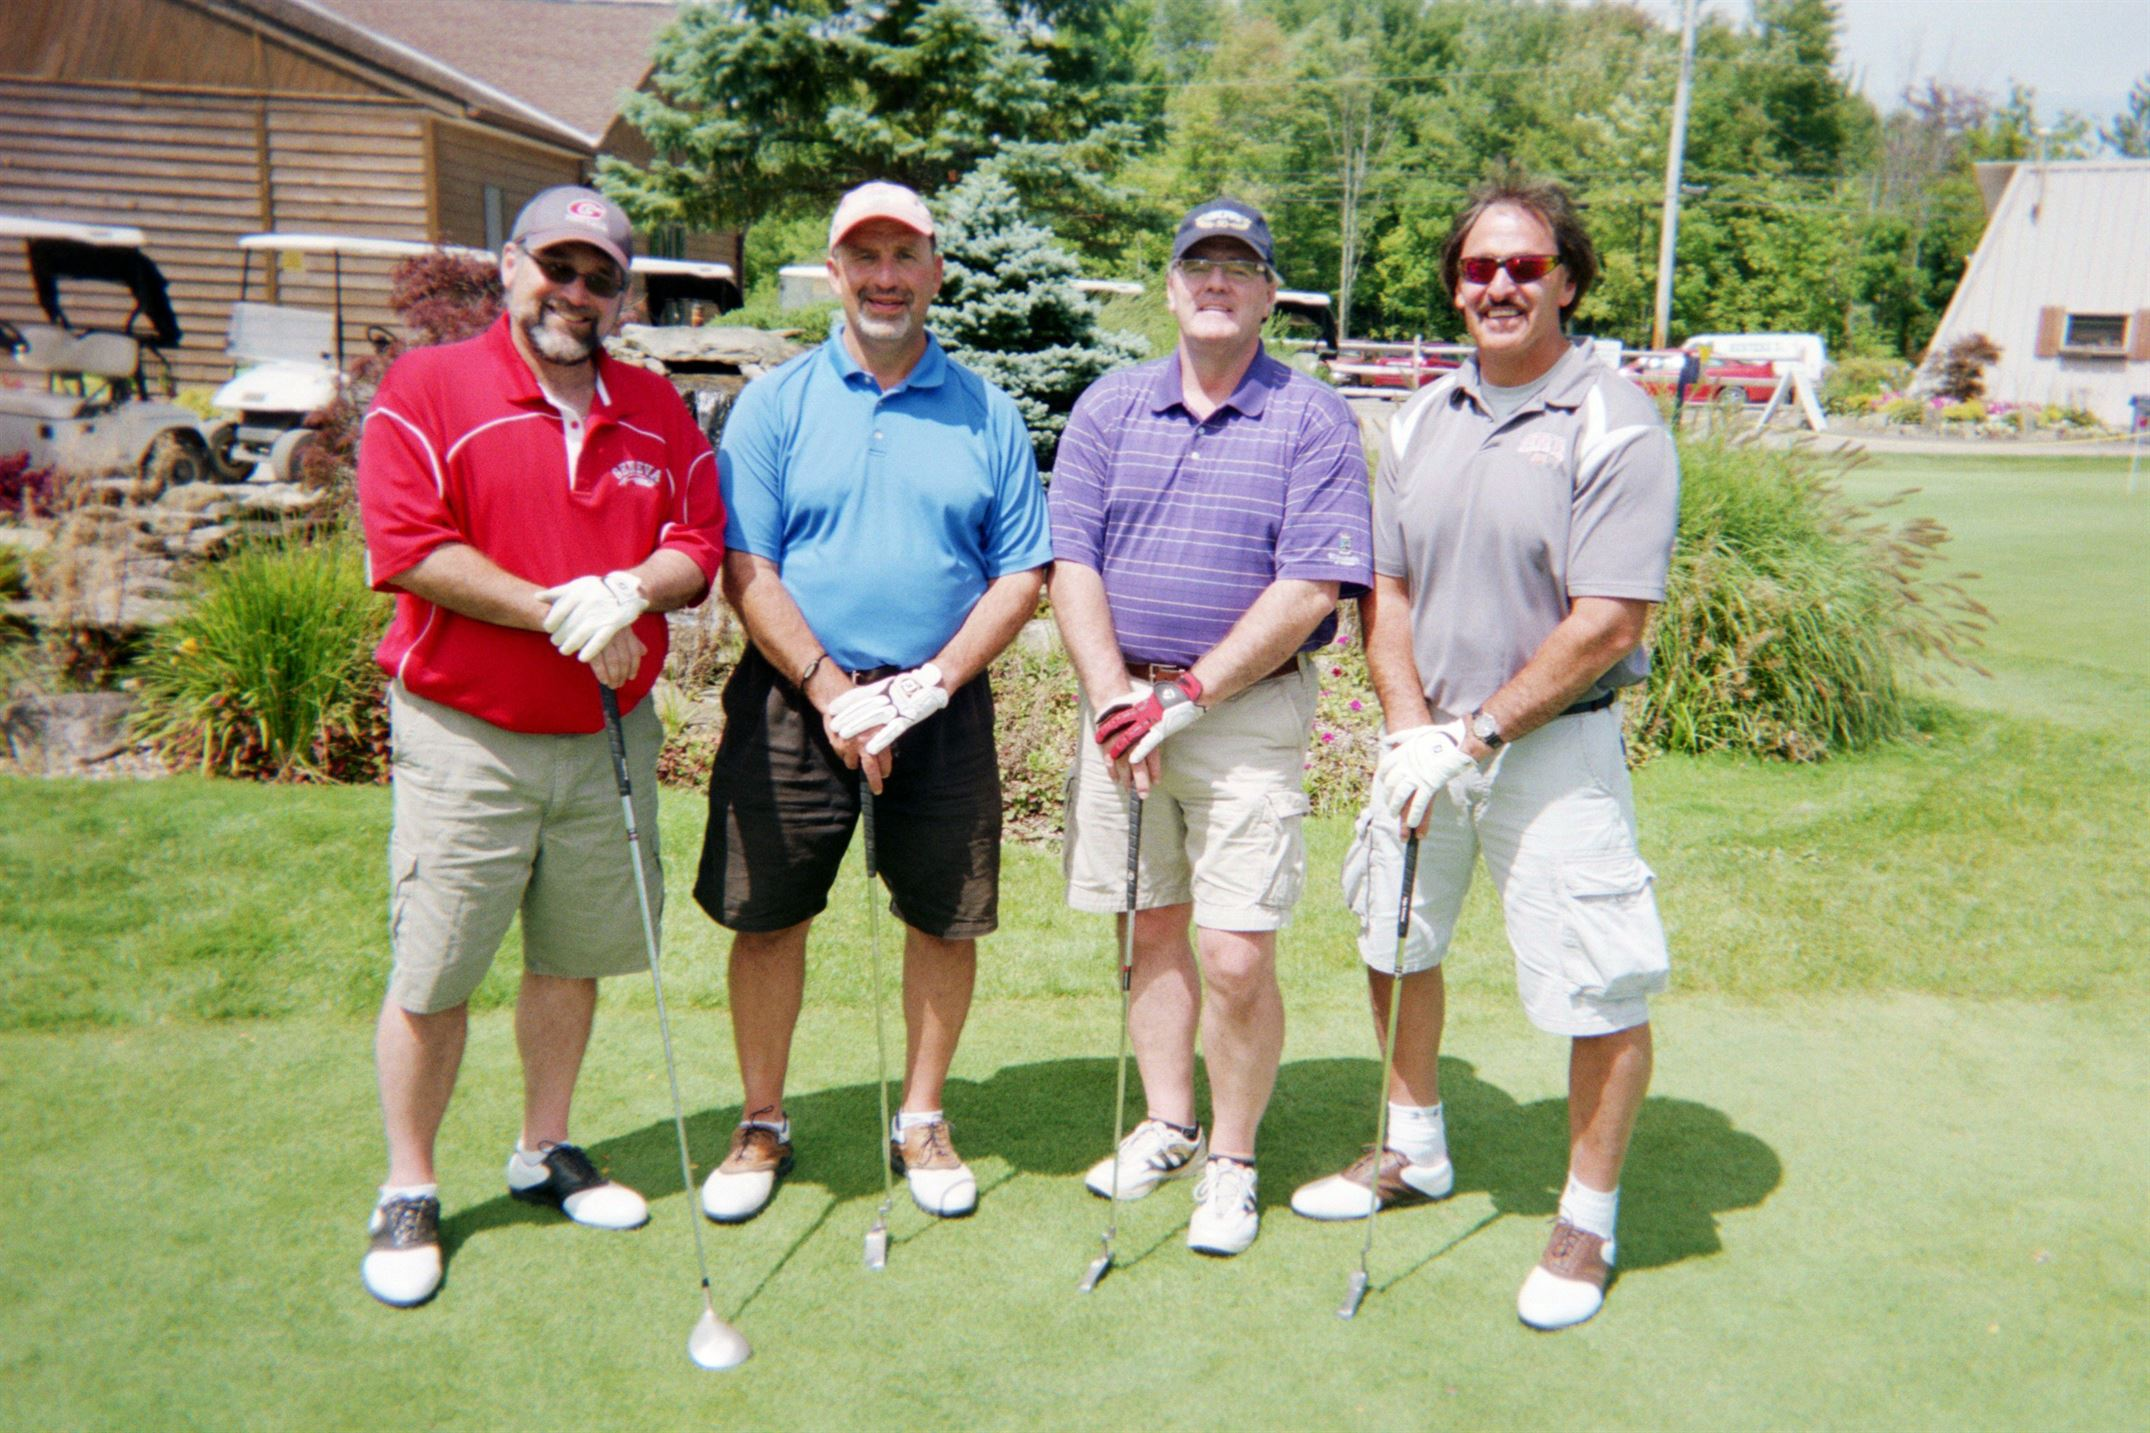 Tony Tersigni, Mike Hassett, Randy Hackathorn, Tony Hassett